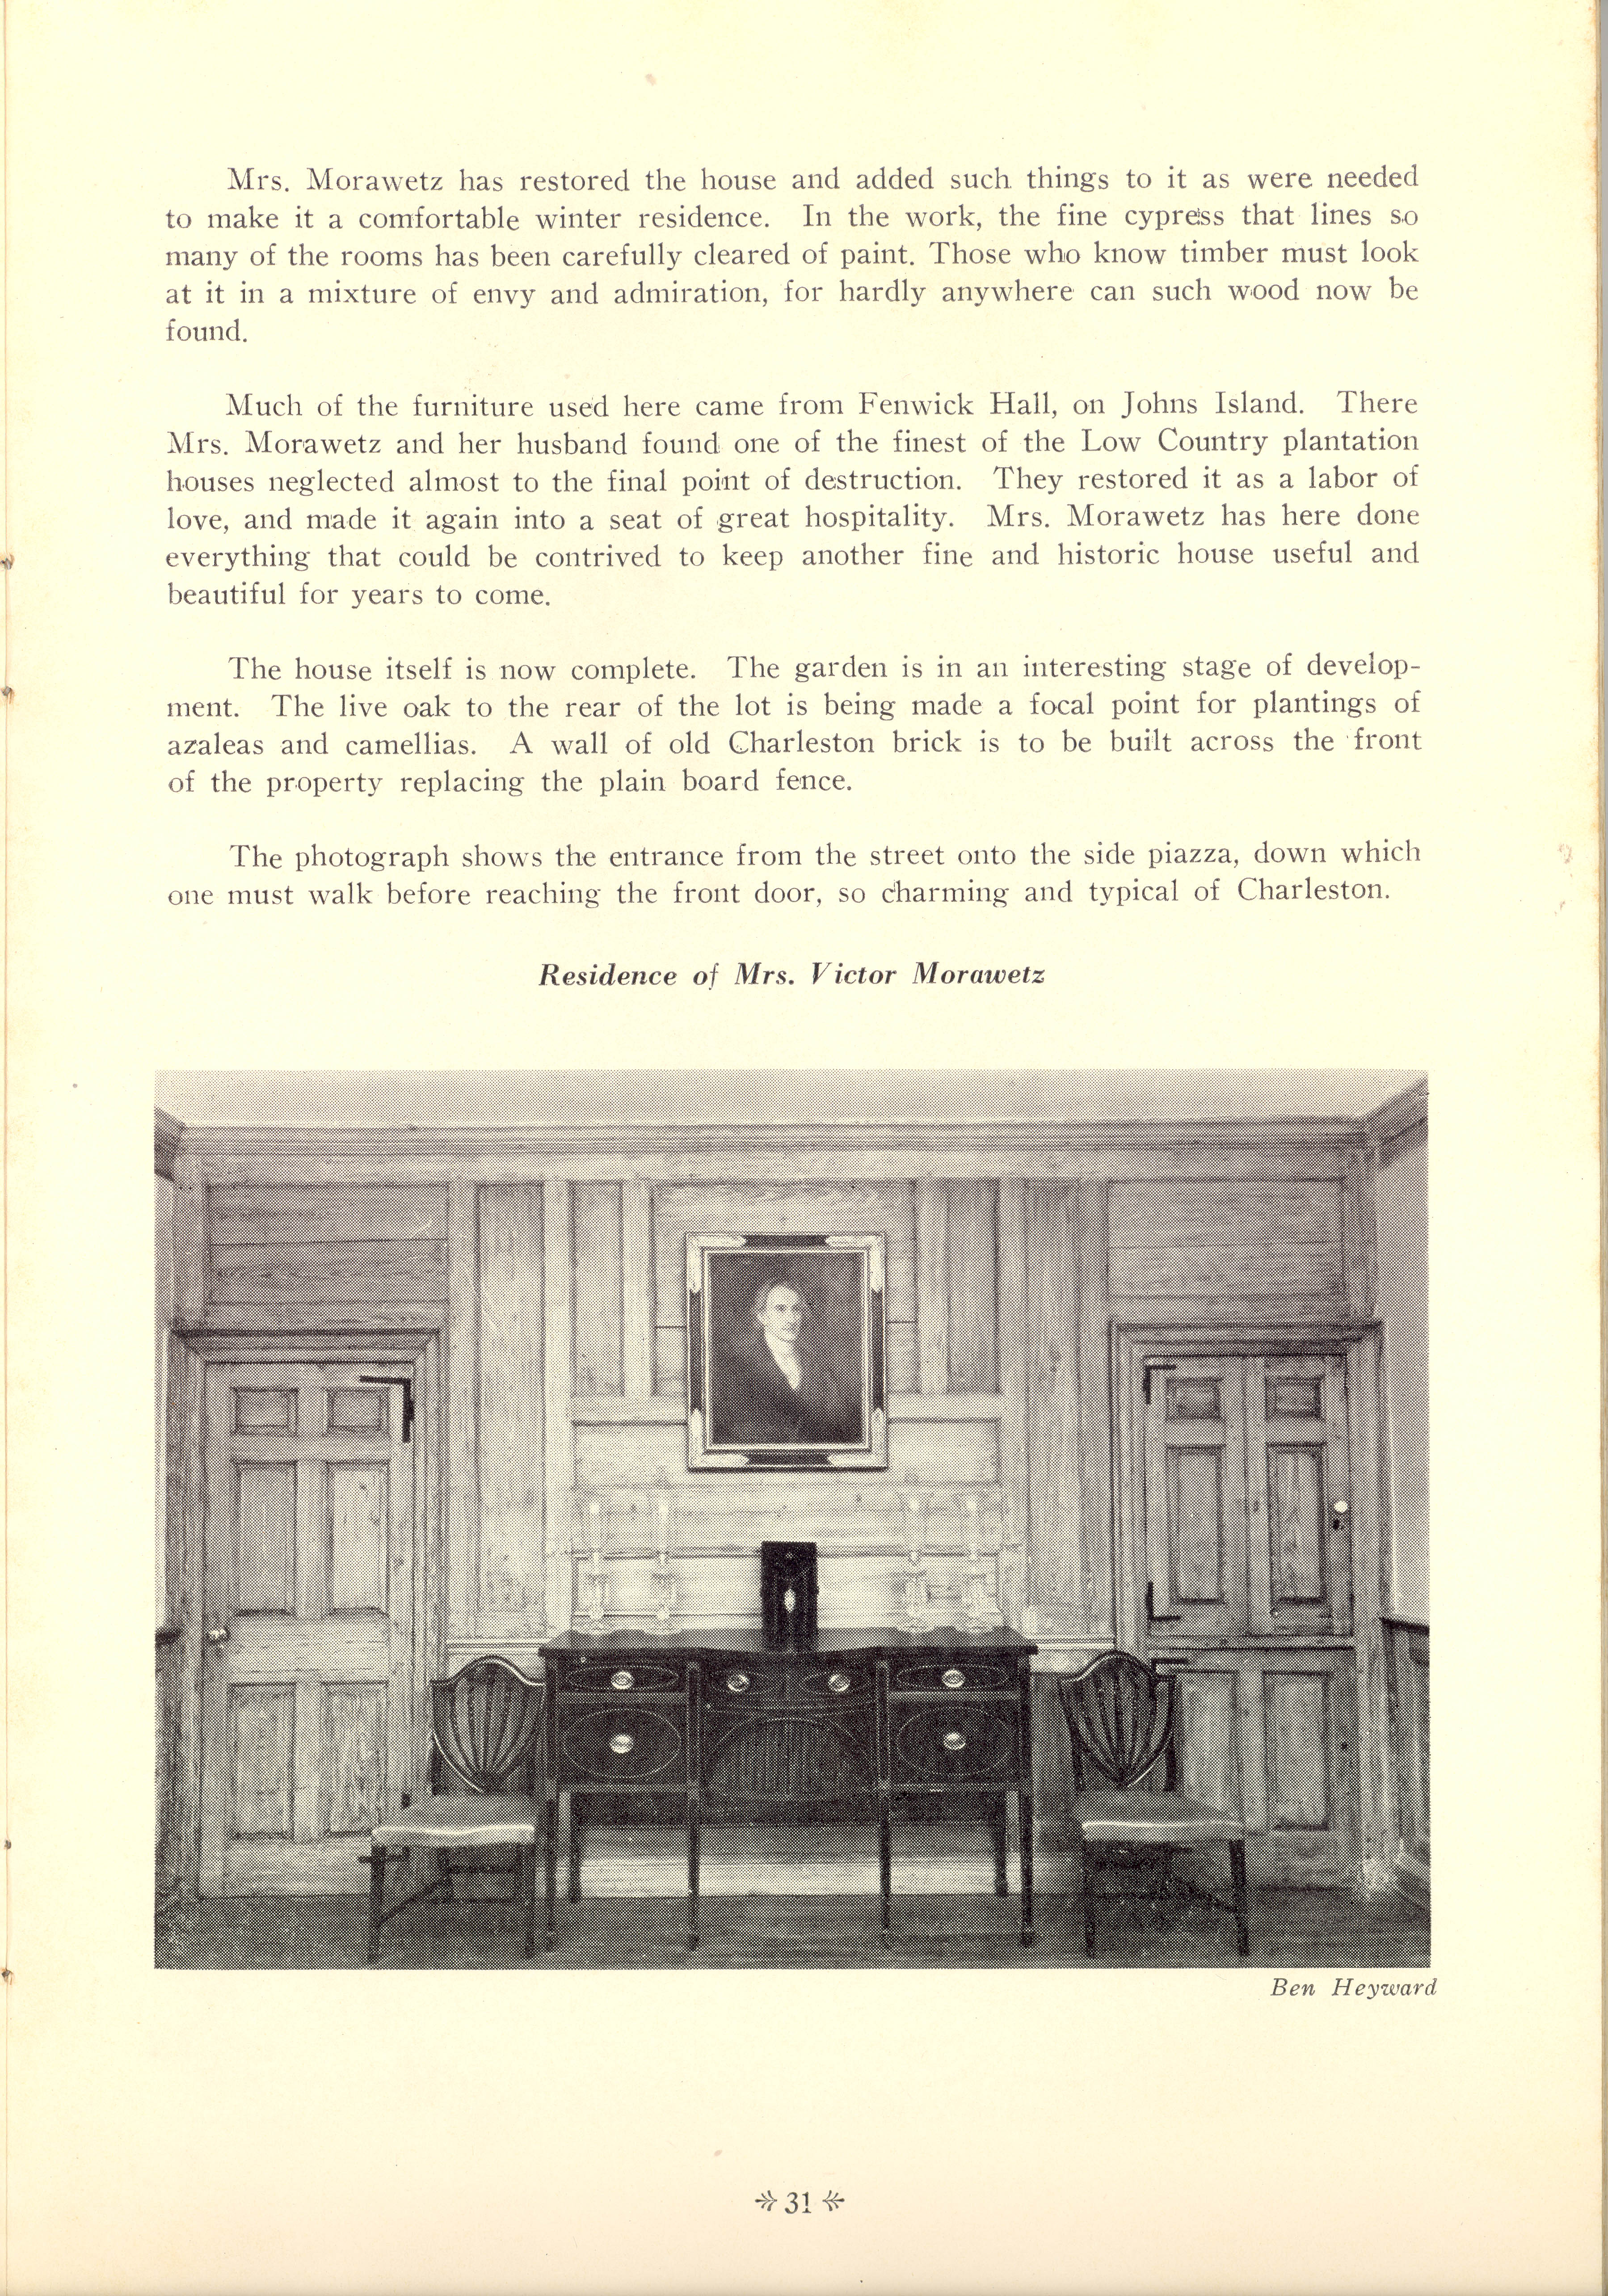 Page 31:  No. 11 - Colonel Isaac Motte's House, 30 Meeting Street, c. 1769, cont'd